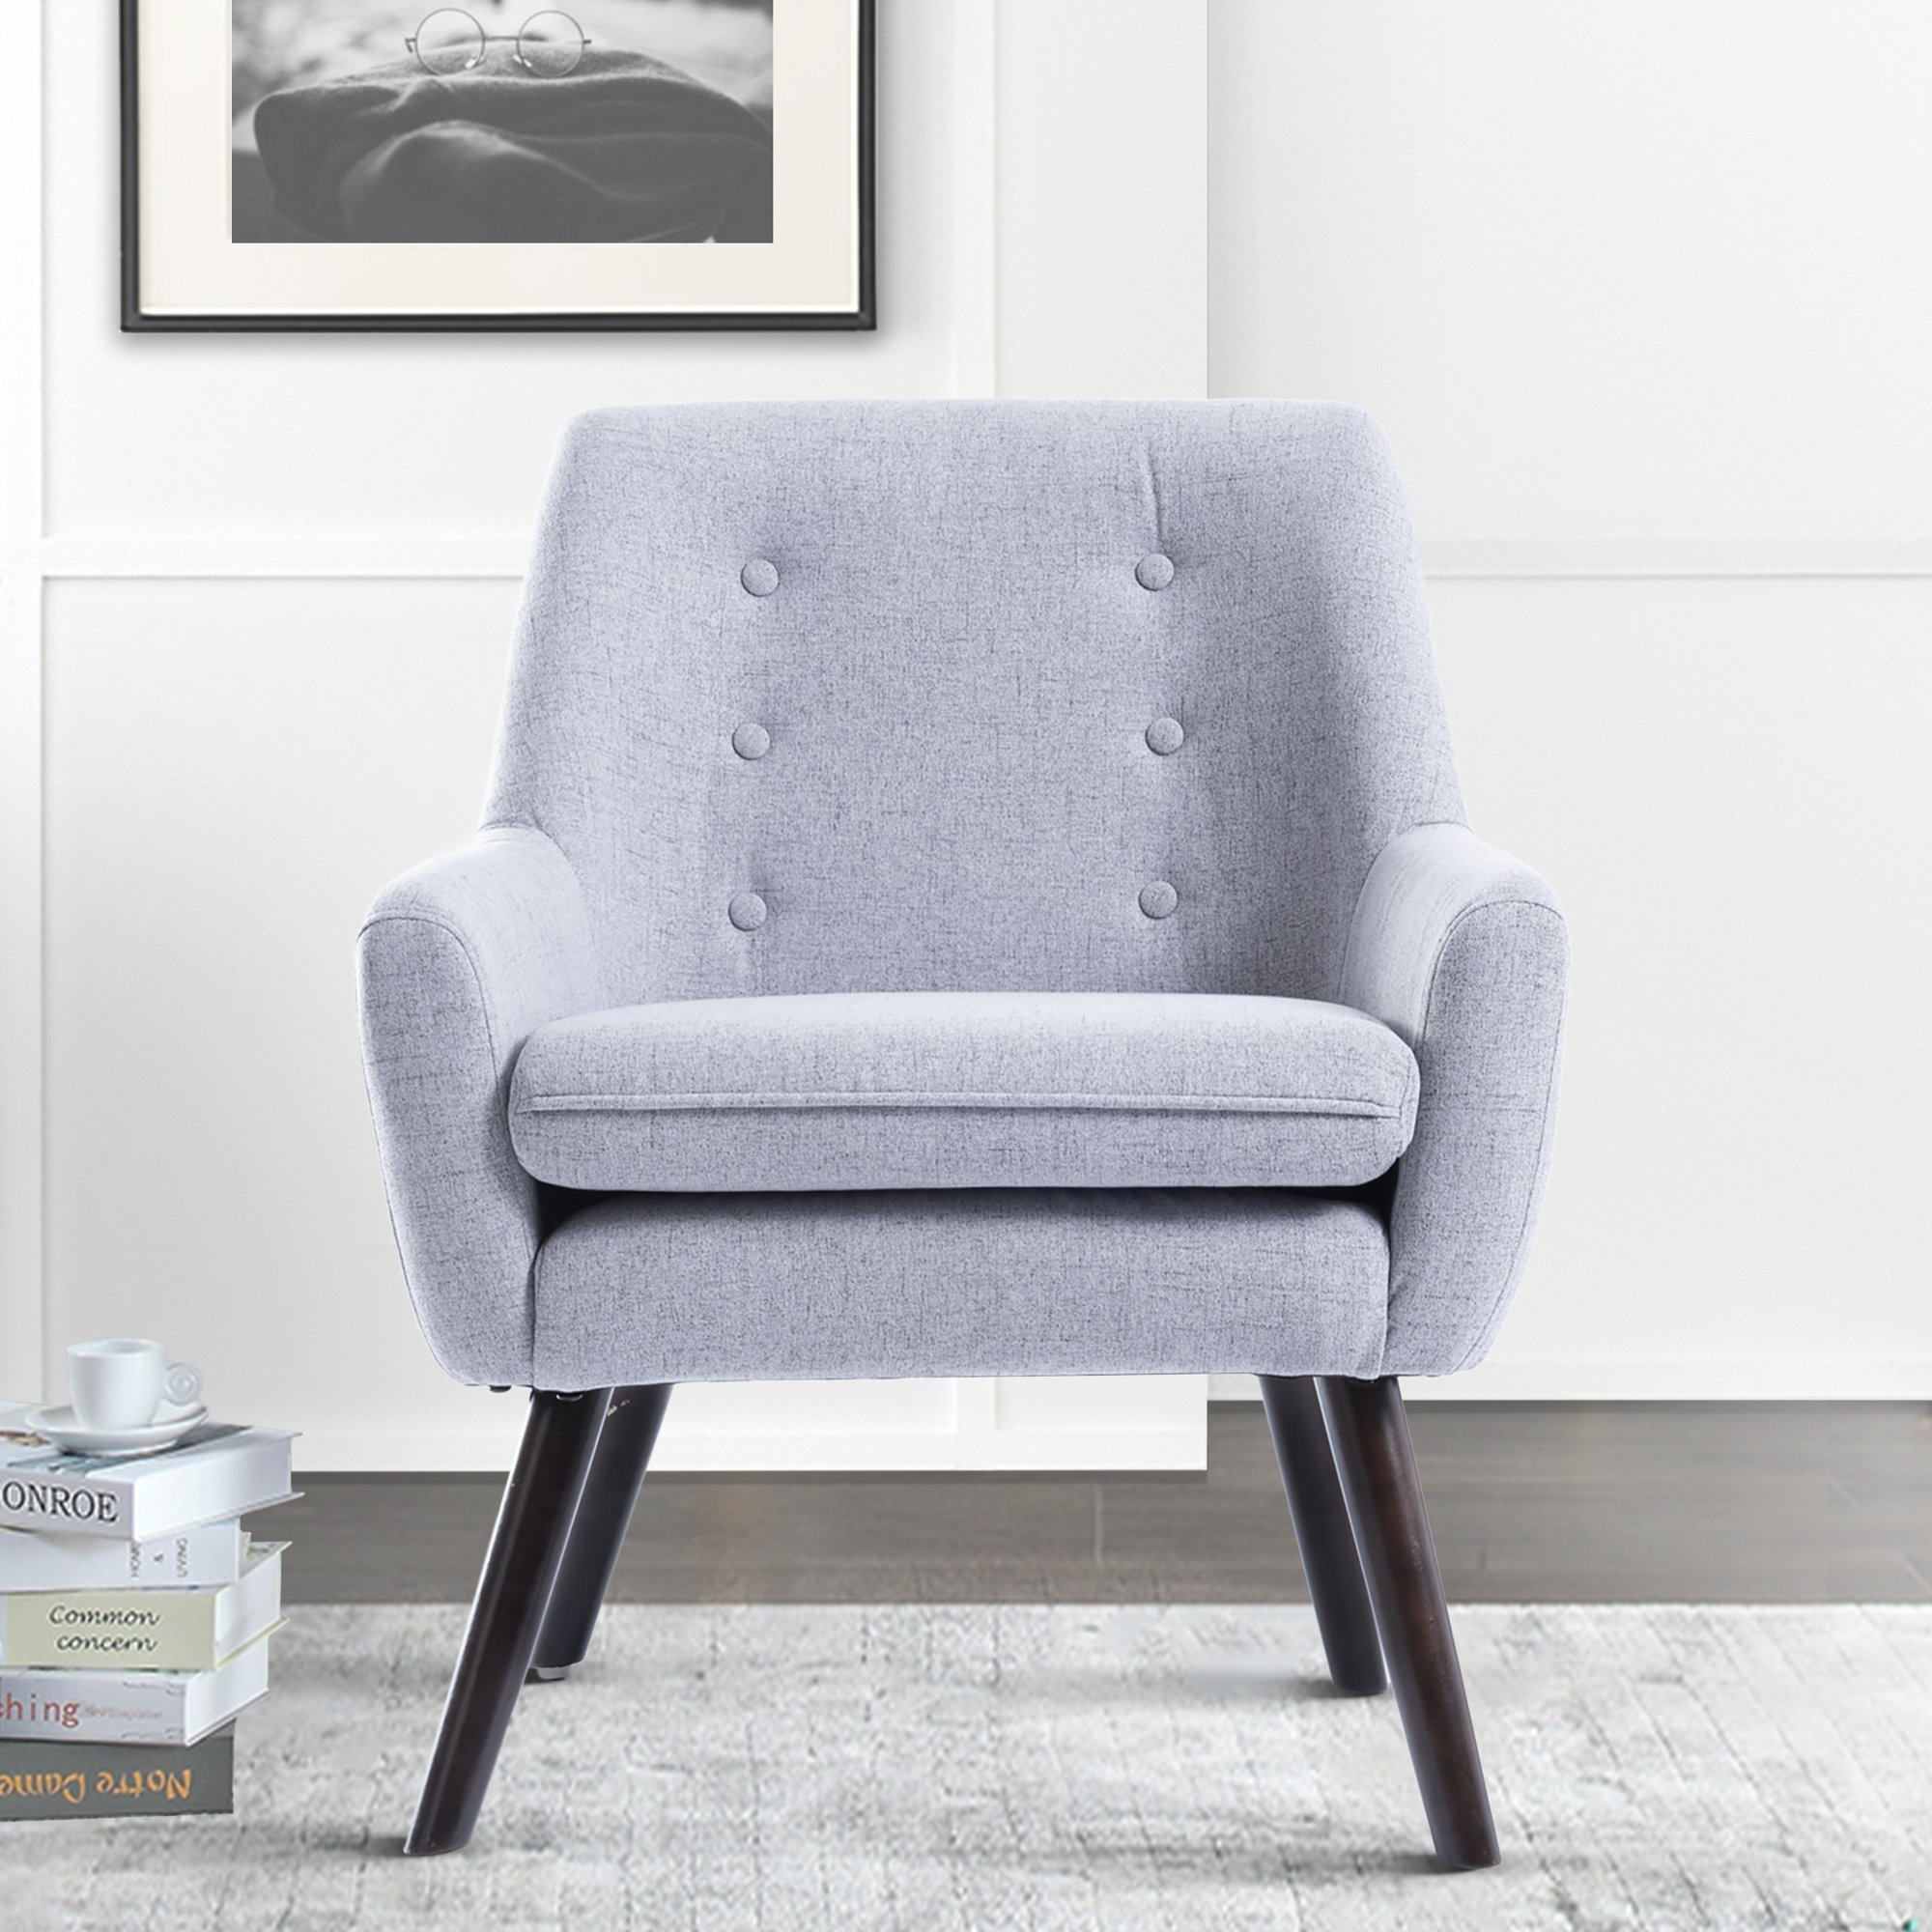 Harper&Bright Designs Stylish Fabric Accent Chair Button-Tufted Upholstered Armchair with Wood Legs (Grey)